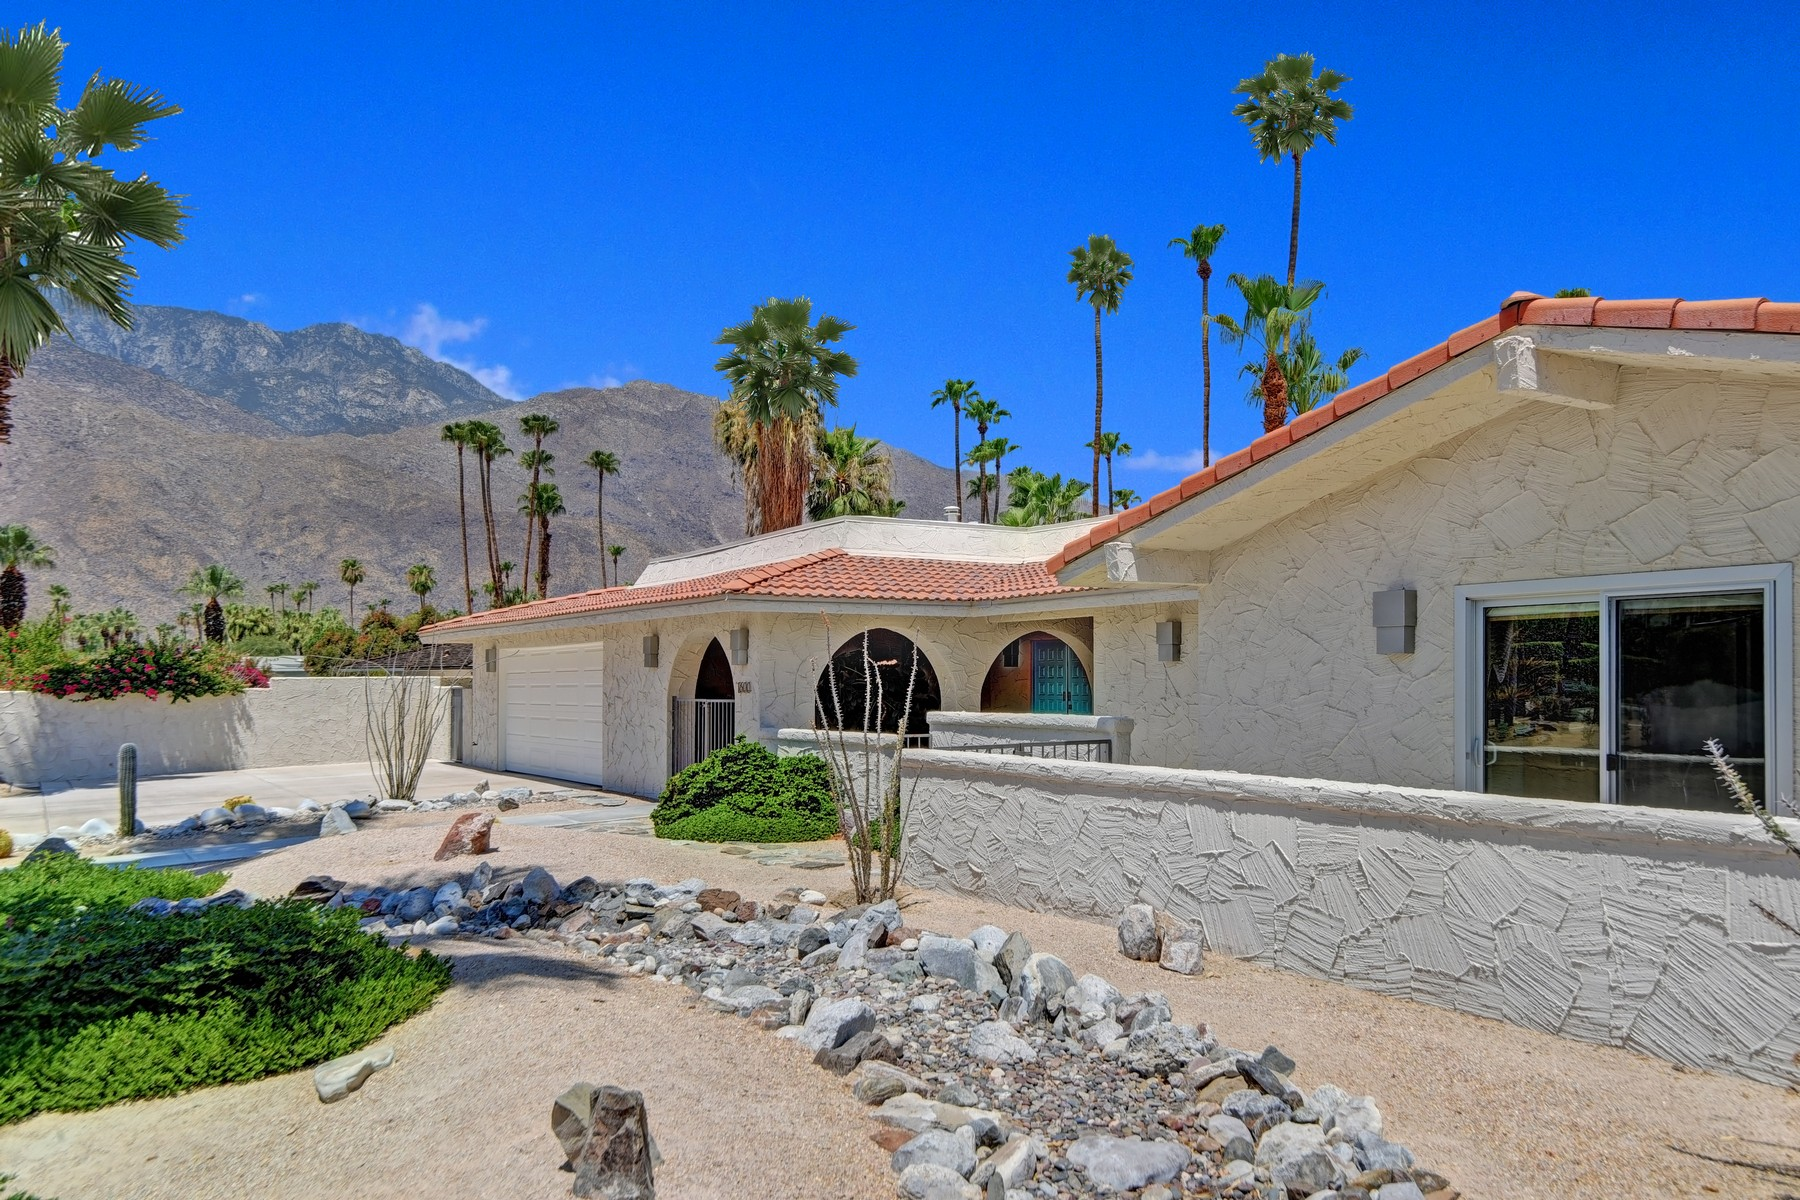 Single Family Home for Sale at 1600 E. Maricopa 1600 E. Maricopa Dr Palm Springs, California 92264 United States